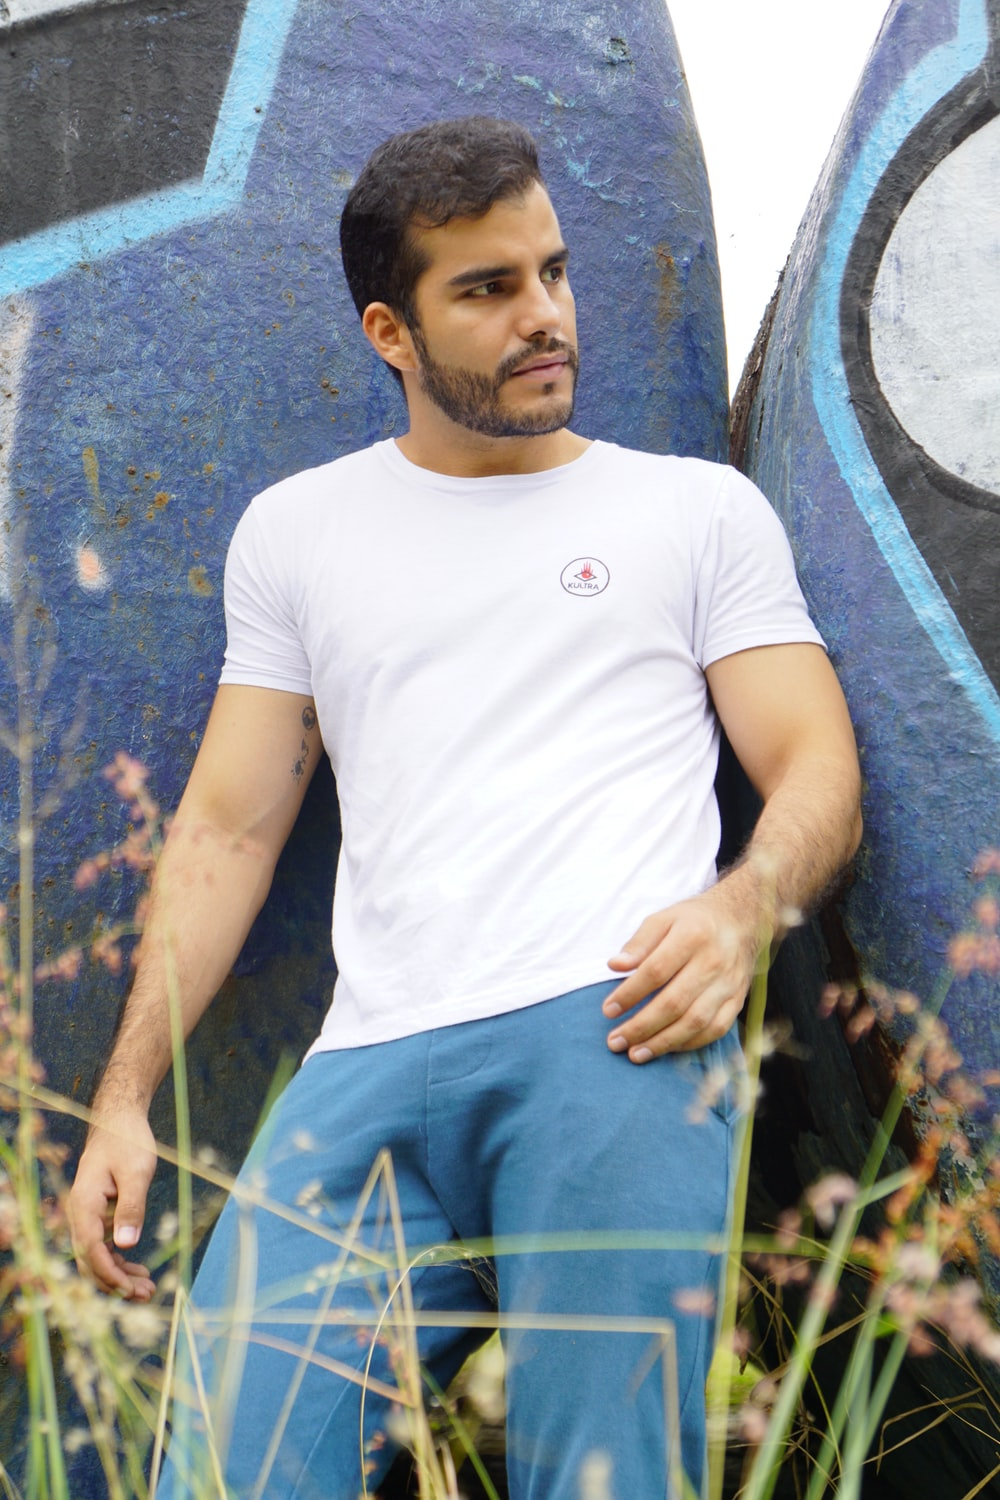 man in white crew neck t-shirt and blue pants leaning on blue and black painted rock